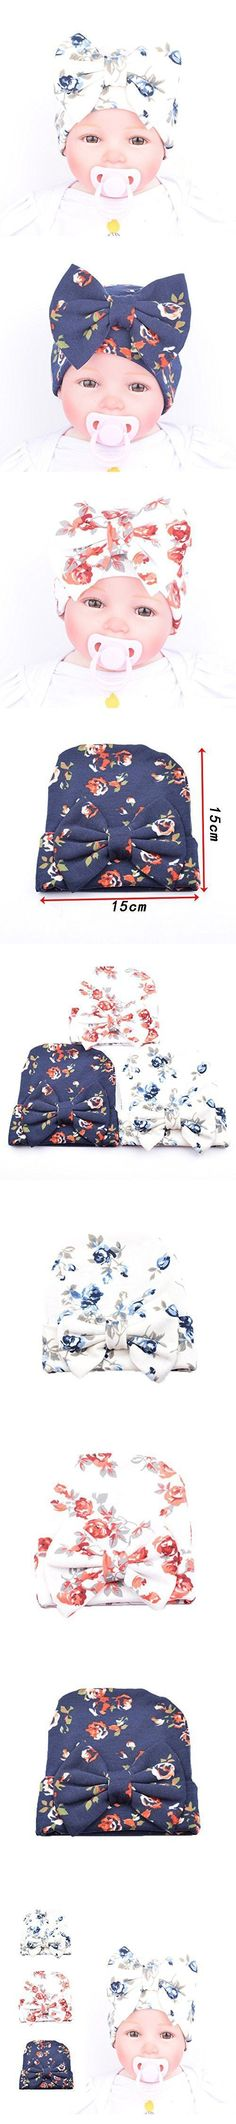 Ever Fairy Infant Baby Girls Floral Print Nursery Newborn Hospital Hat Cap with Big Bow (3 Color(Pink+Blue+Deep Blue))